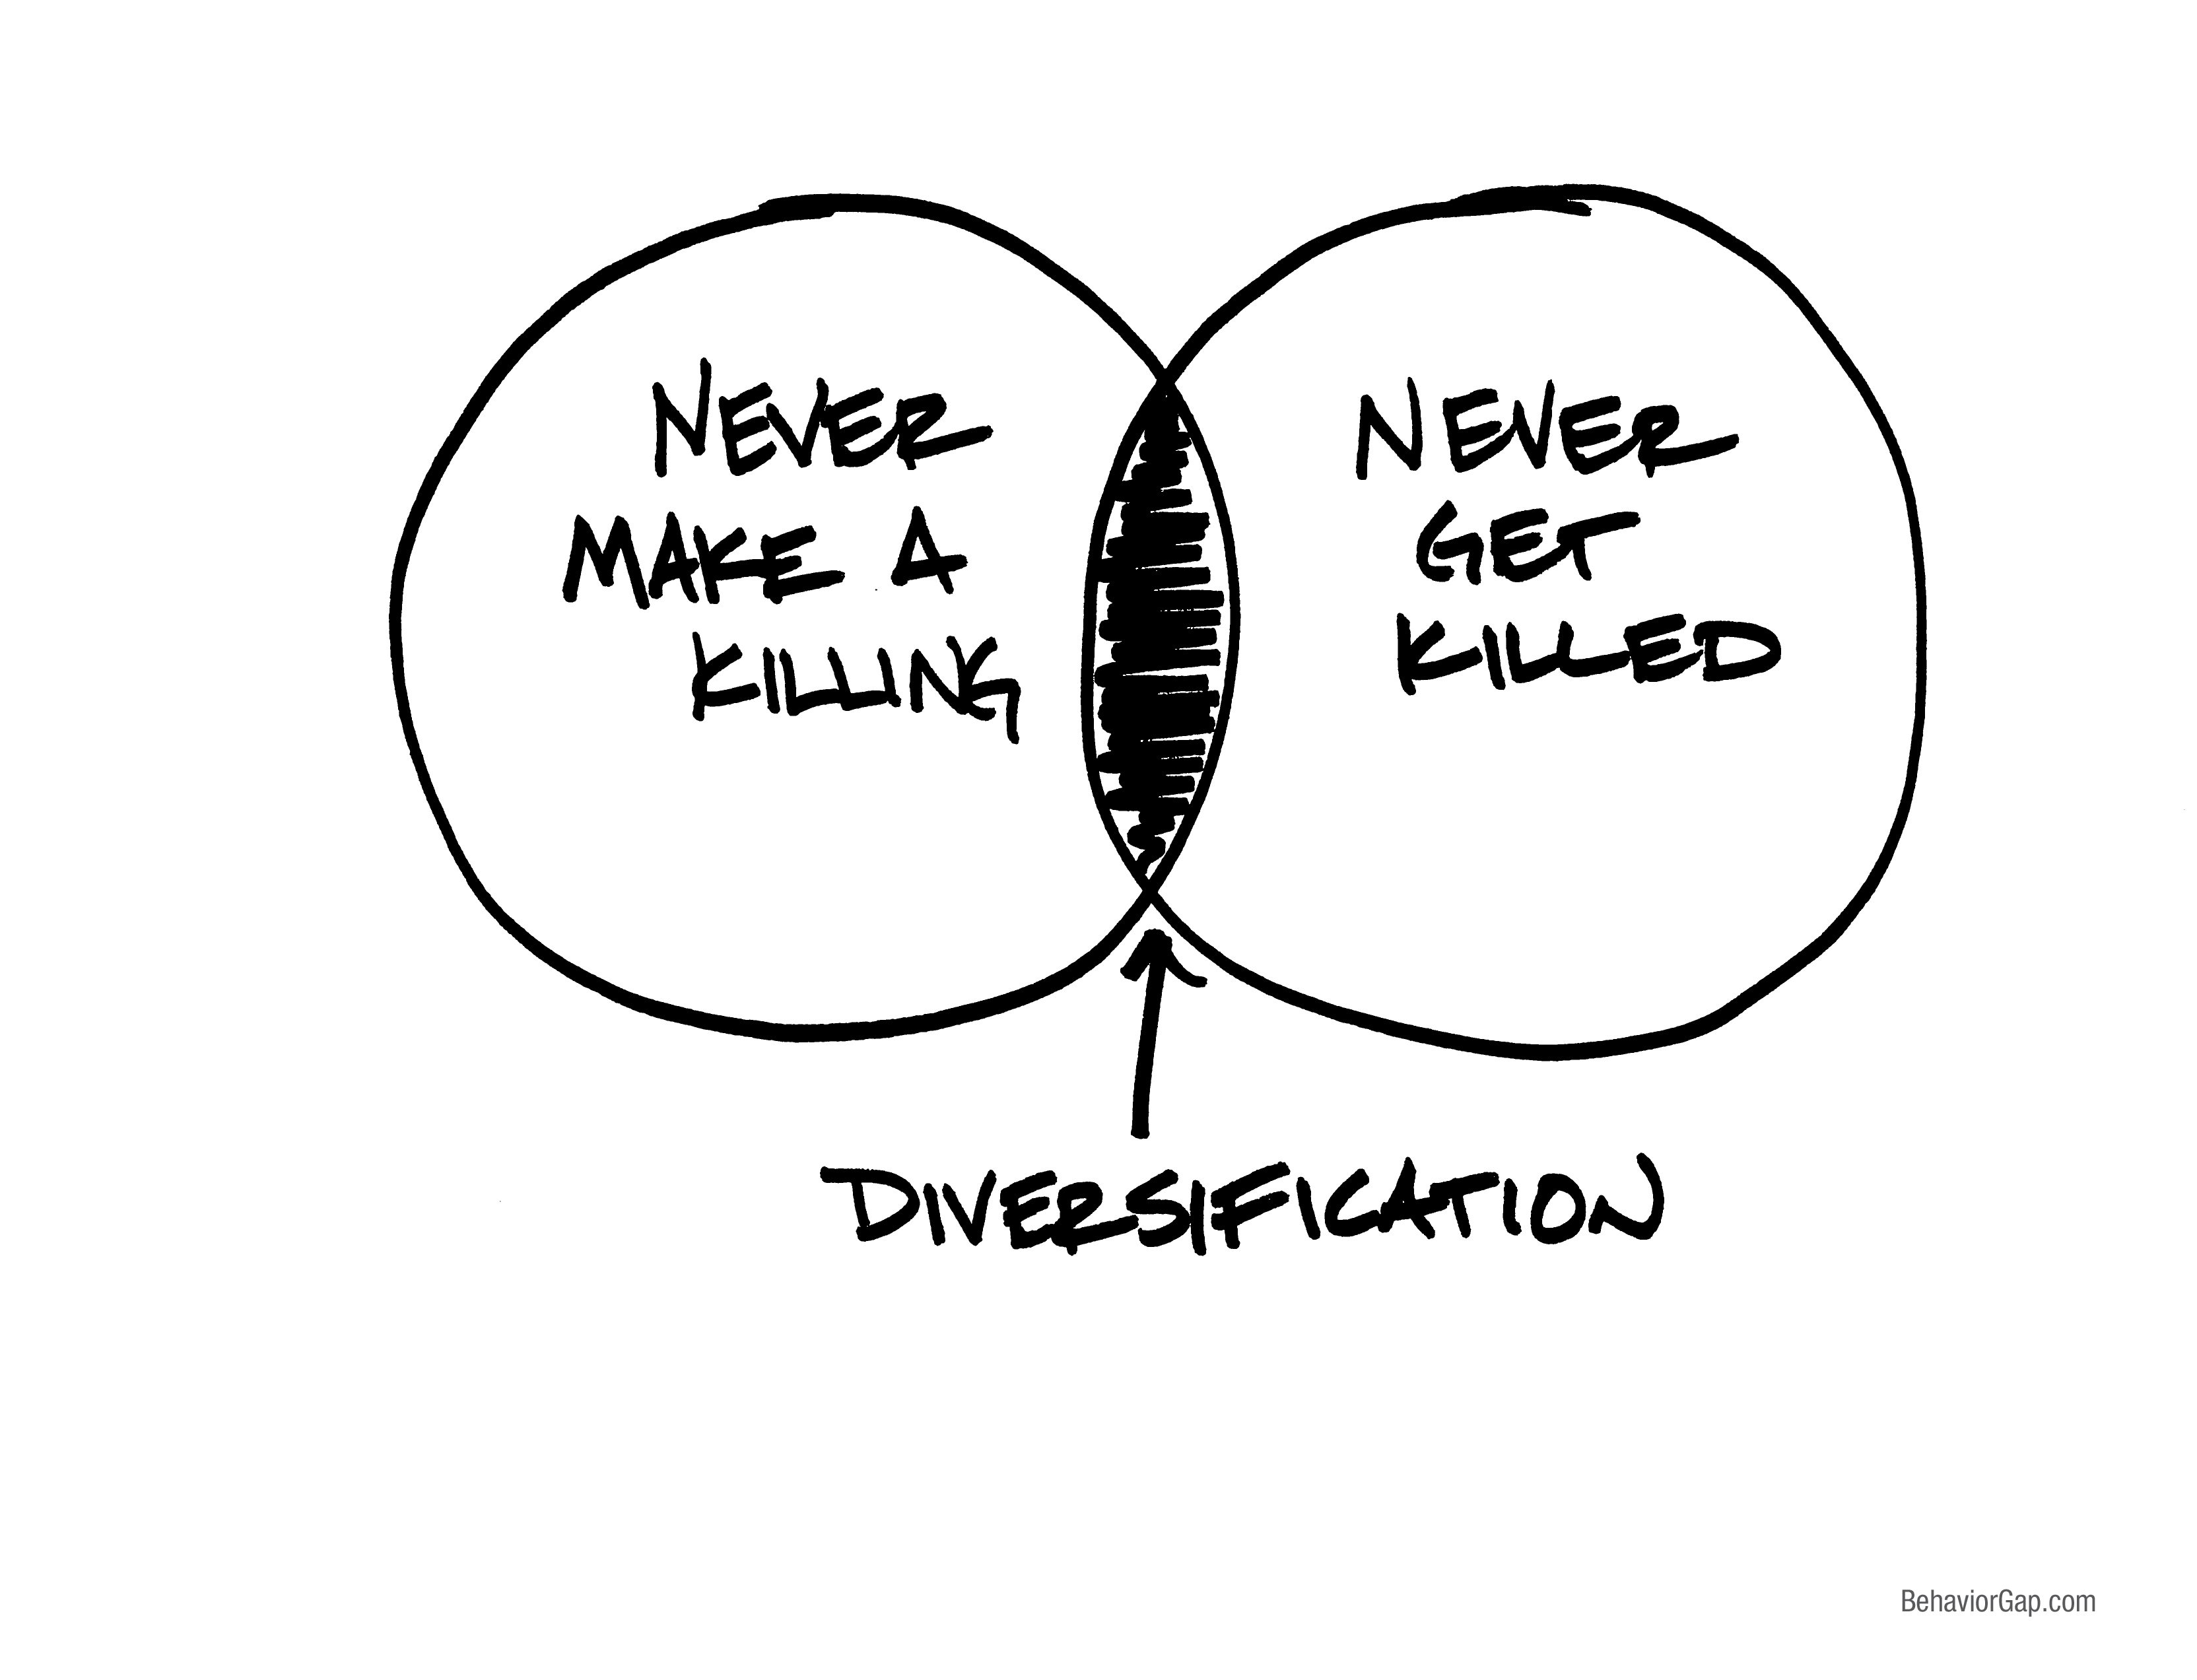 There is a middle ground: diversification